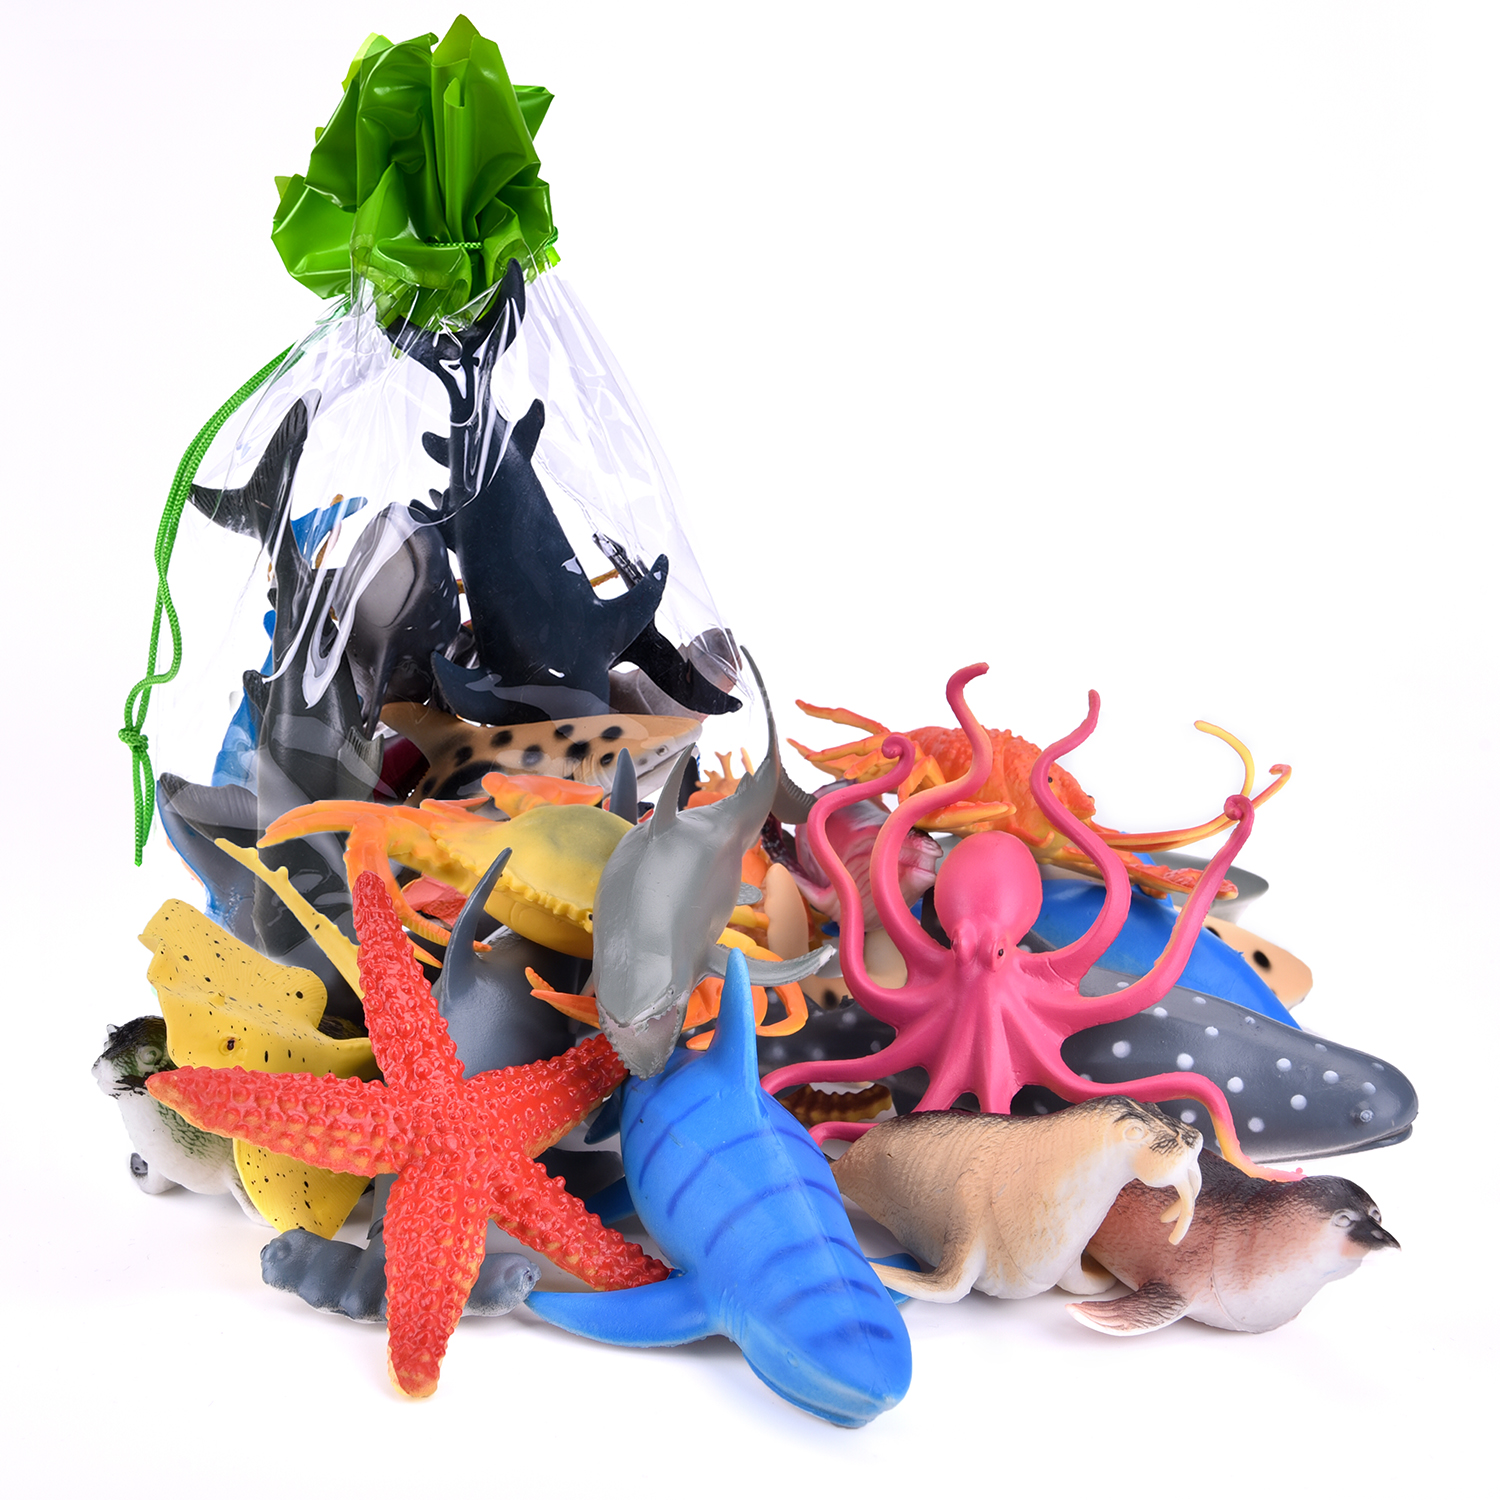 Sea Animals Bath Toys Plastic Summer Rubber Ocean Creatures Collection Underwater Marine Fish Pool Toy Includes a Storage Bag 18 PCs F-02